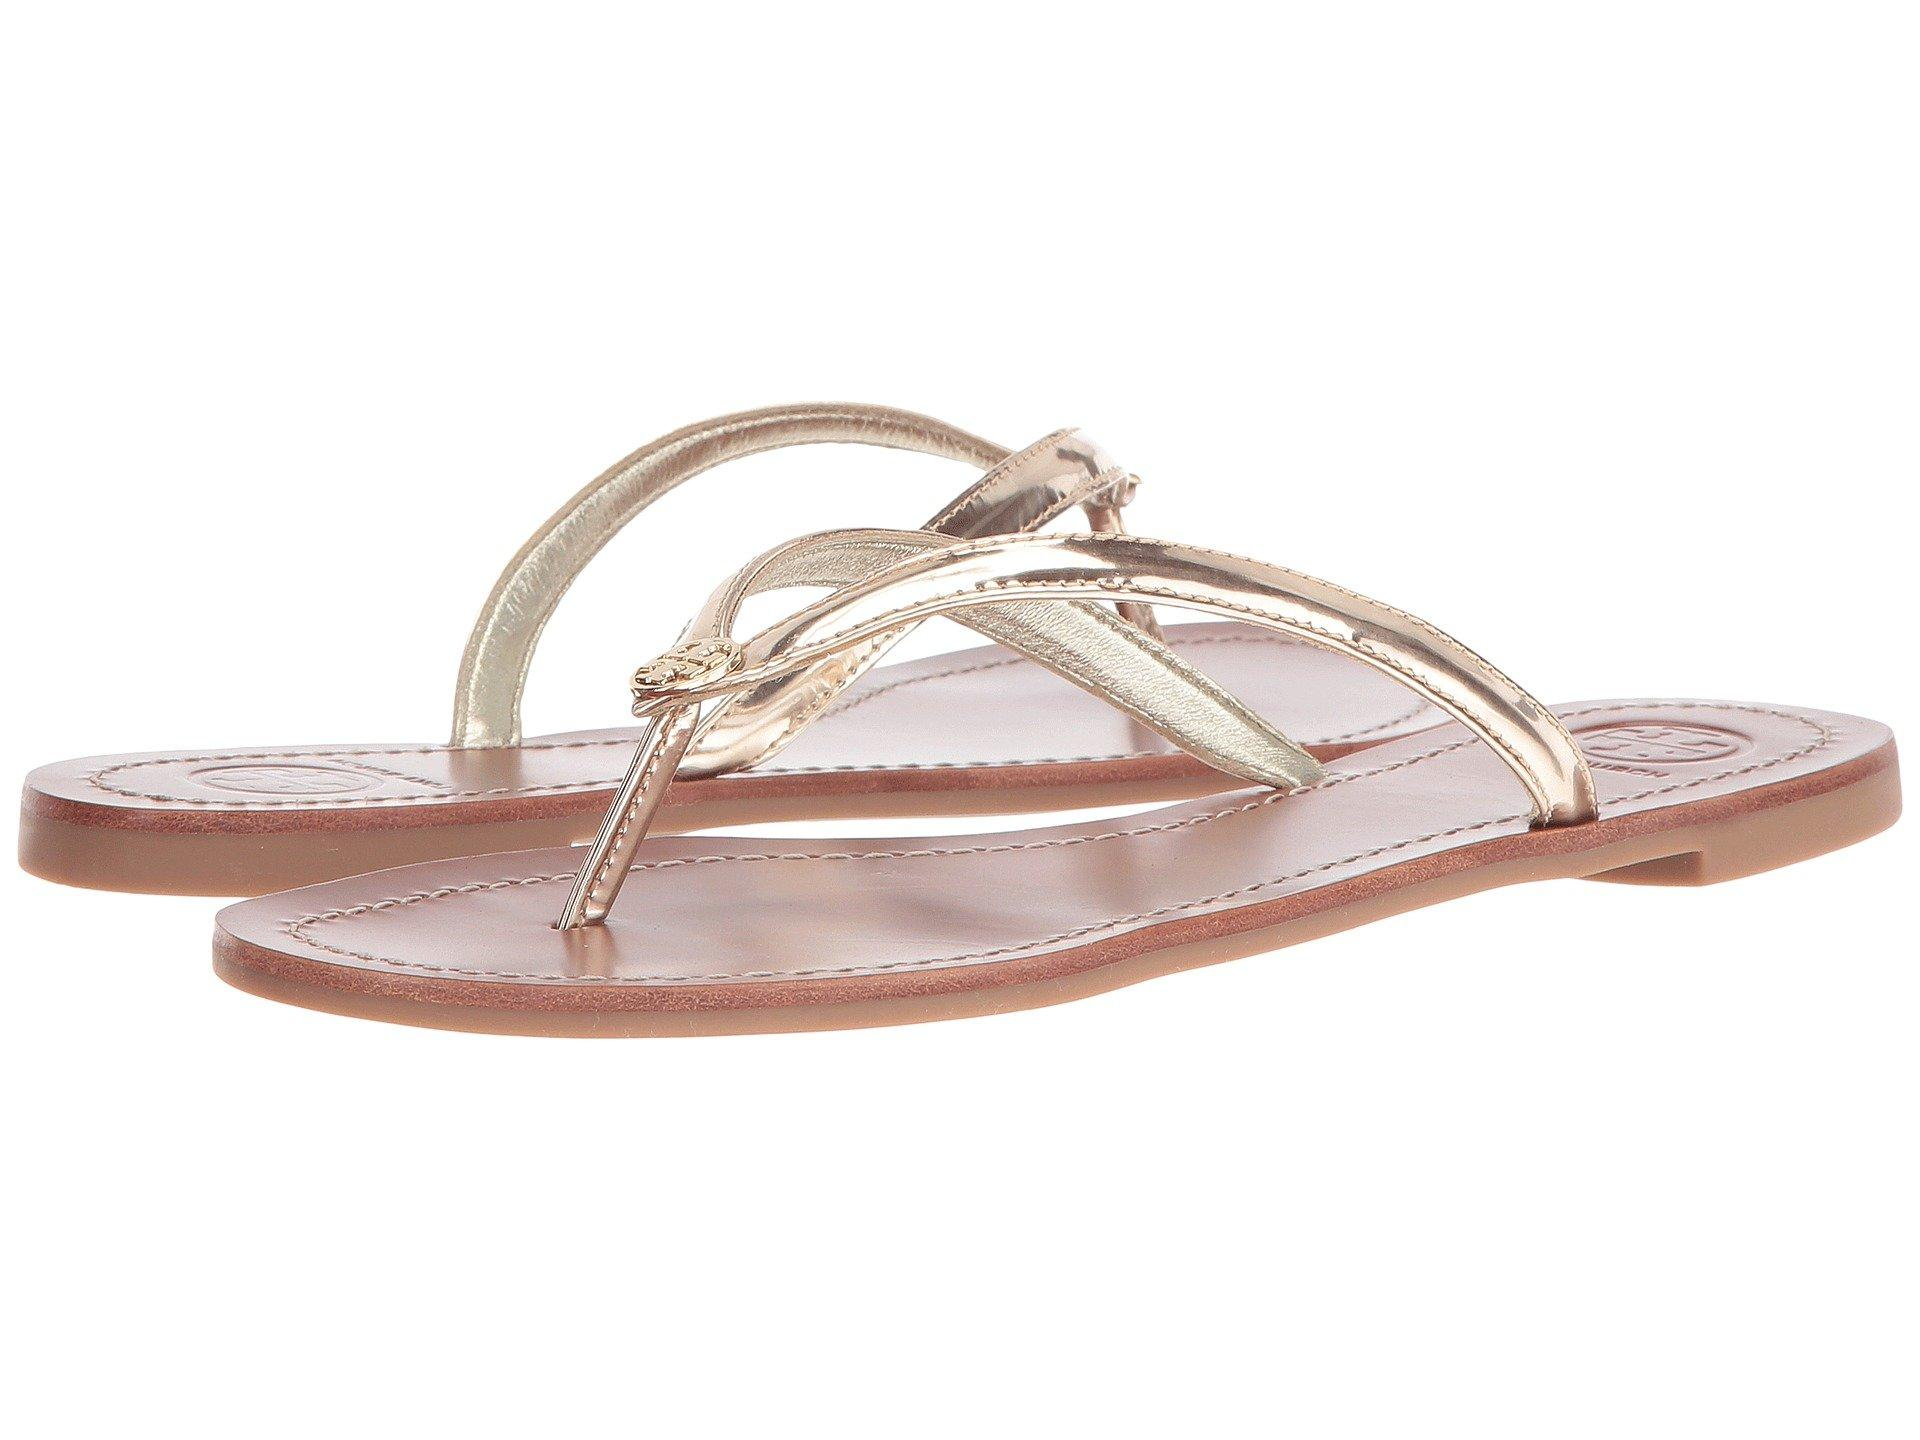 4fe81c247 Tory Burch Terra Thong In Spark Gold